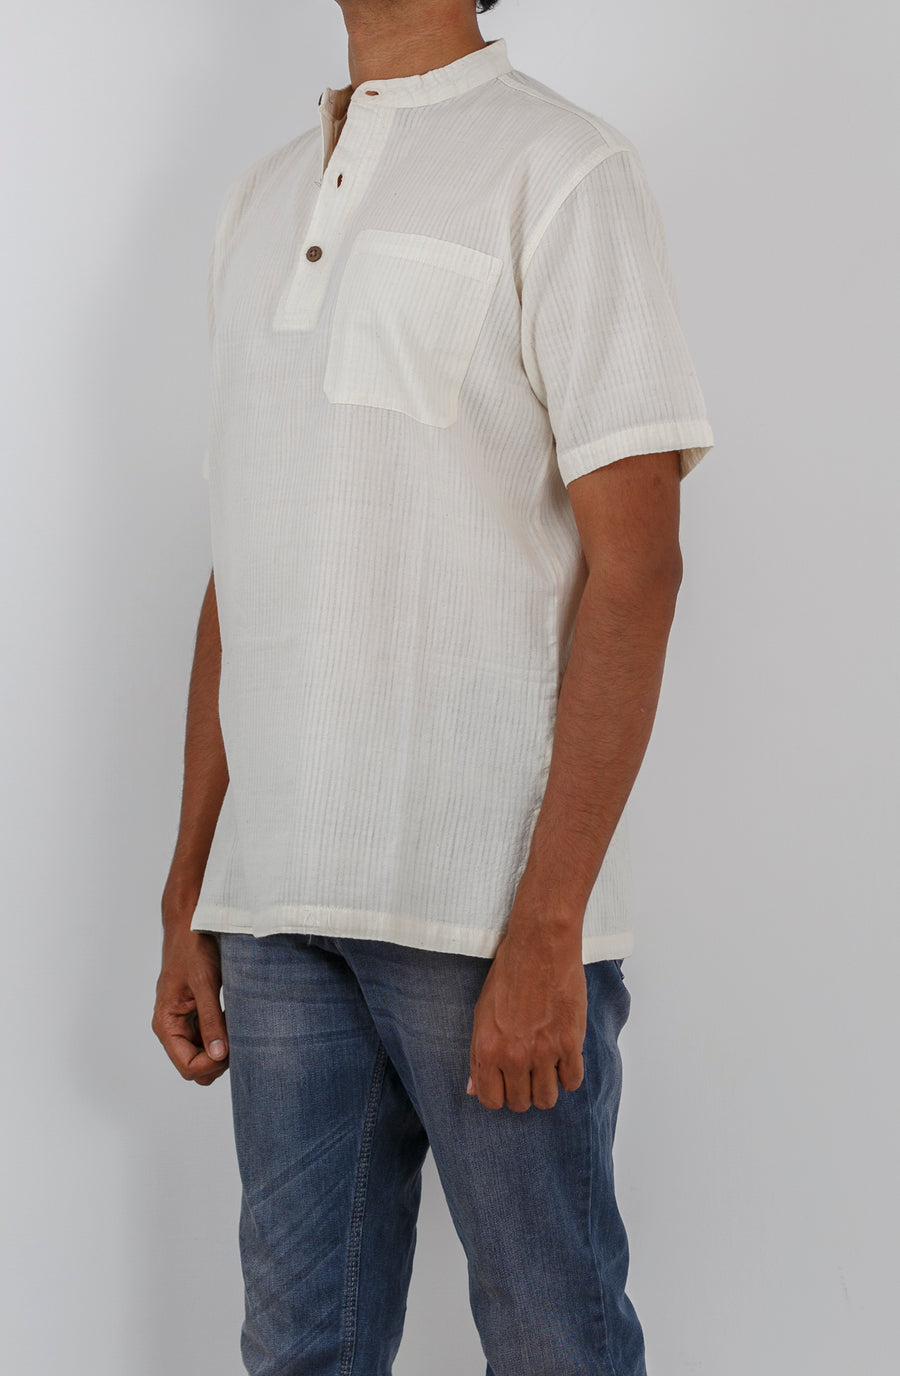 Malkha Natural Dyed Handlooms -SOLID KURTA : KORA : SHORT SLEEVE